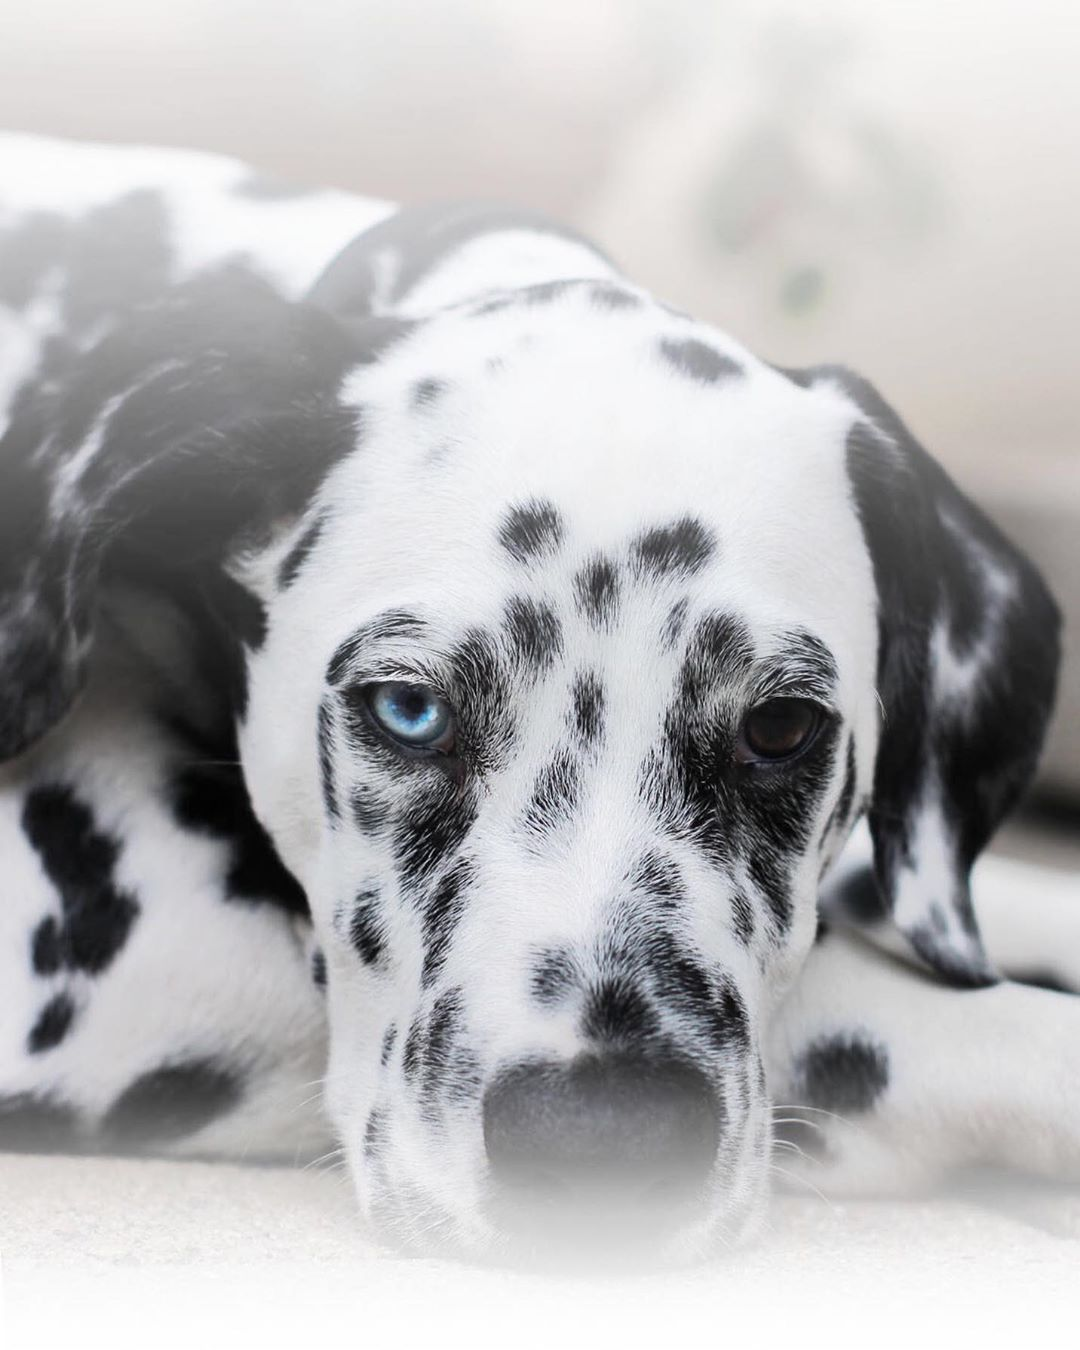 Nothing Makes Me Smile More Than Looking Into The Face Of A Dog That Luves Me Ihr Lieben Habt Einen Schonen Tag Dogs Dog Friends Dalmatian Puppy